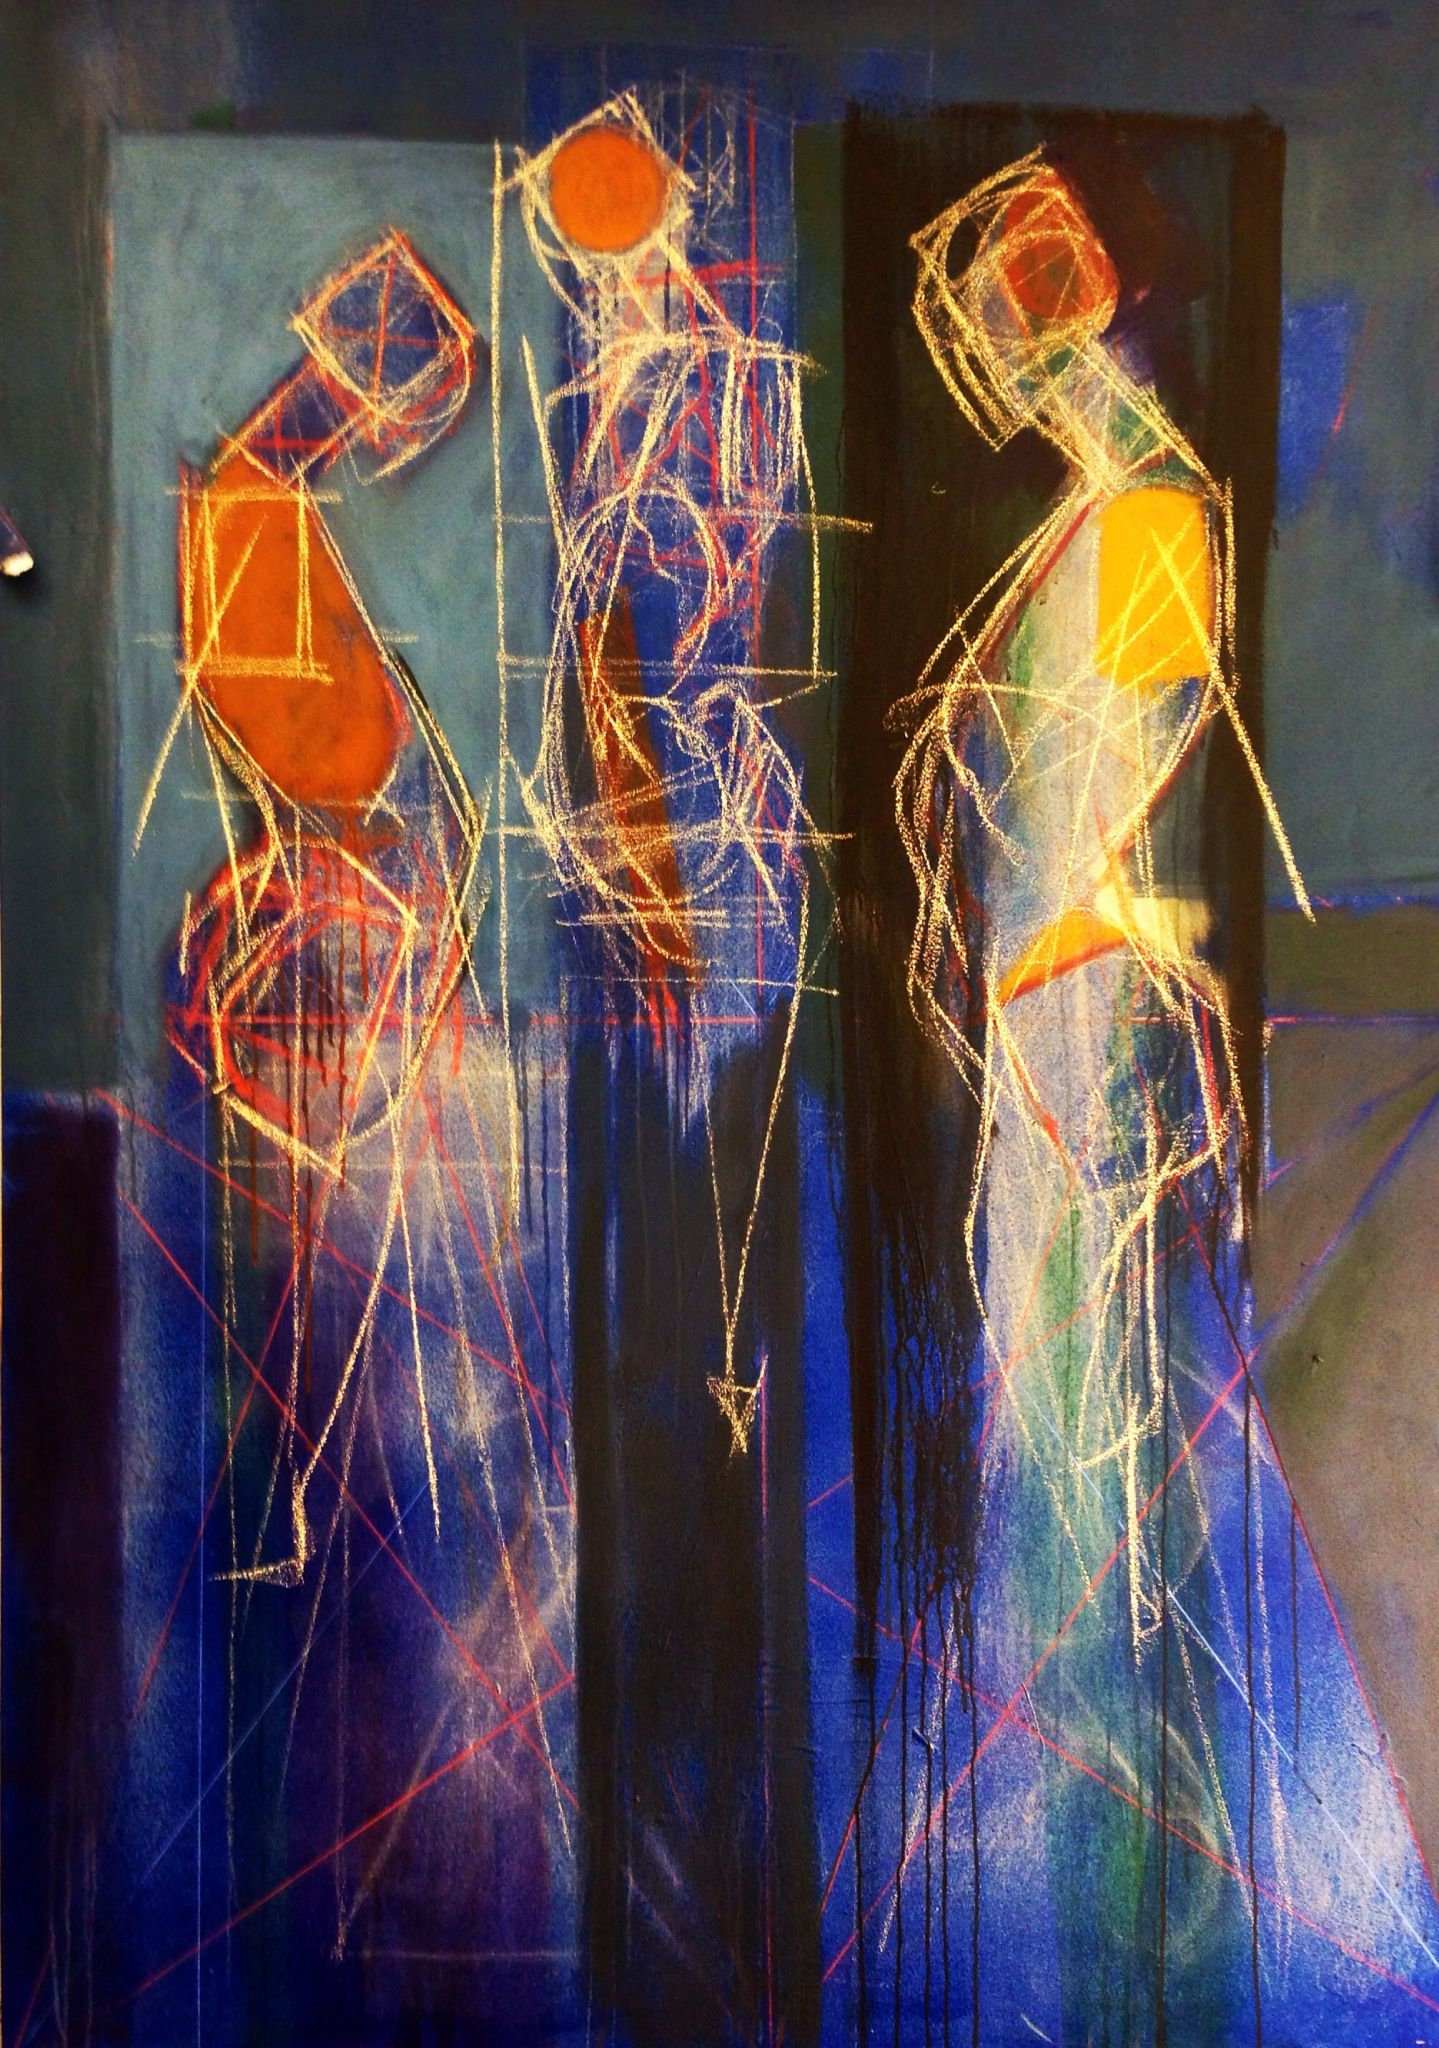 Abstract Figures By Michael Mentler Studied At The School Of The